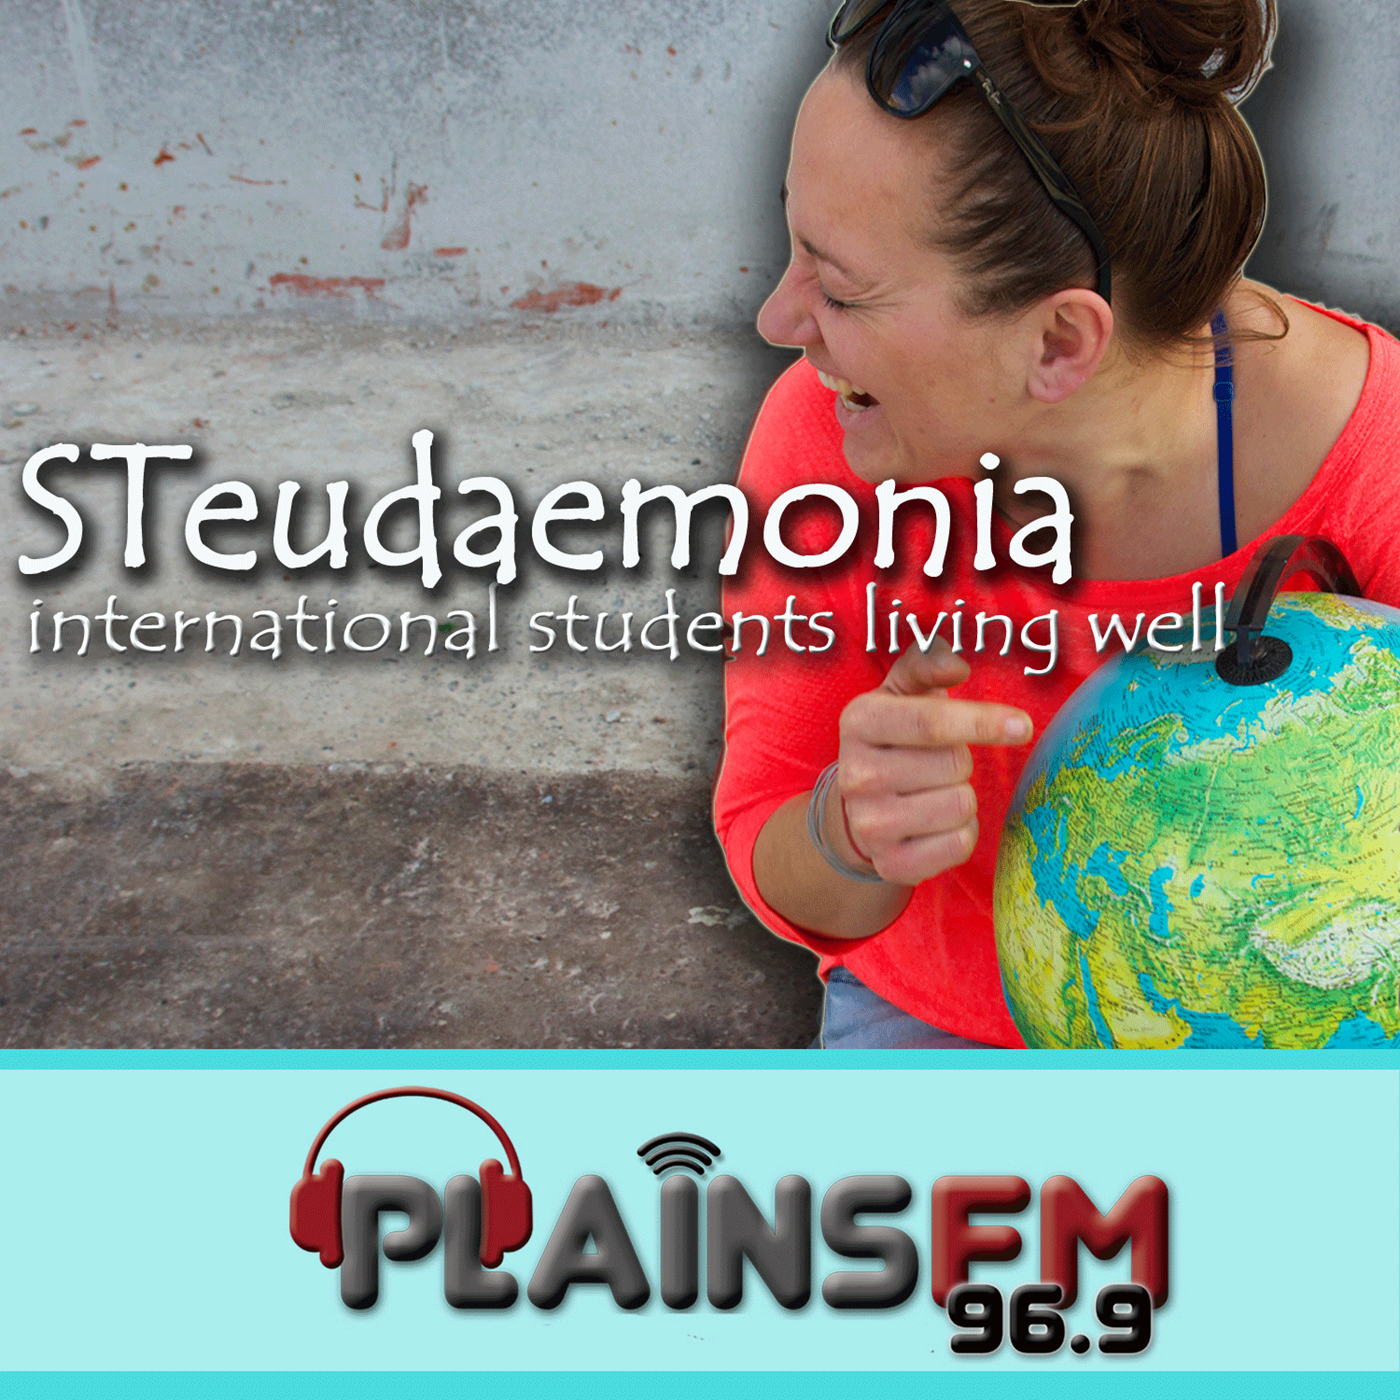 STeudaemonia - International Students Living Well-19-05-2019 - Outdoor Sports in New Zealand